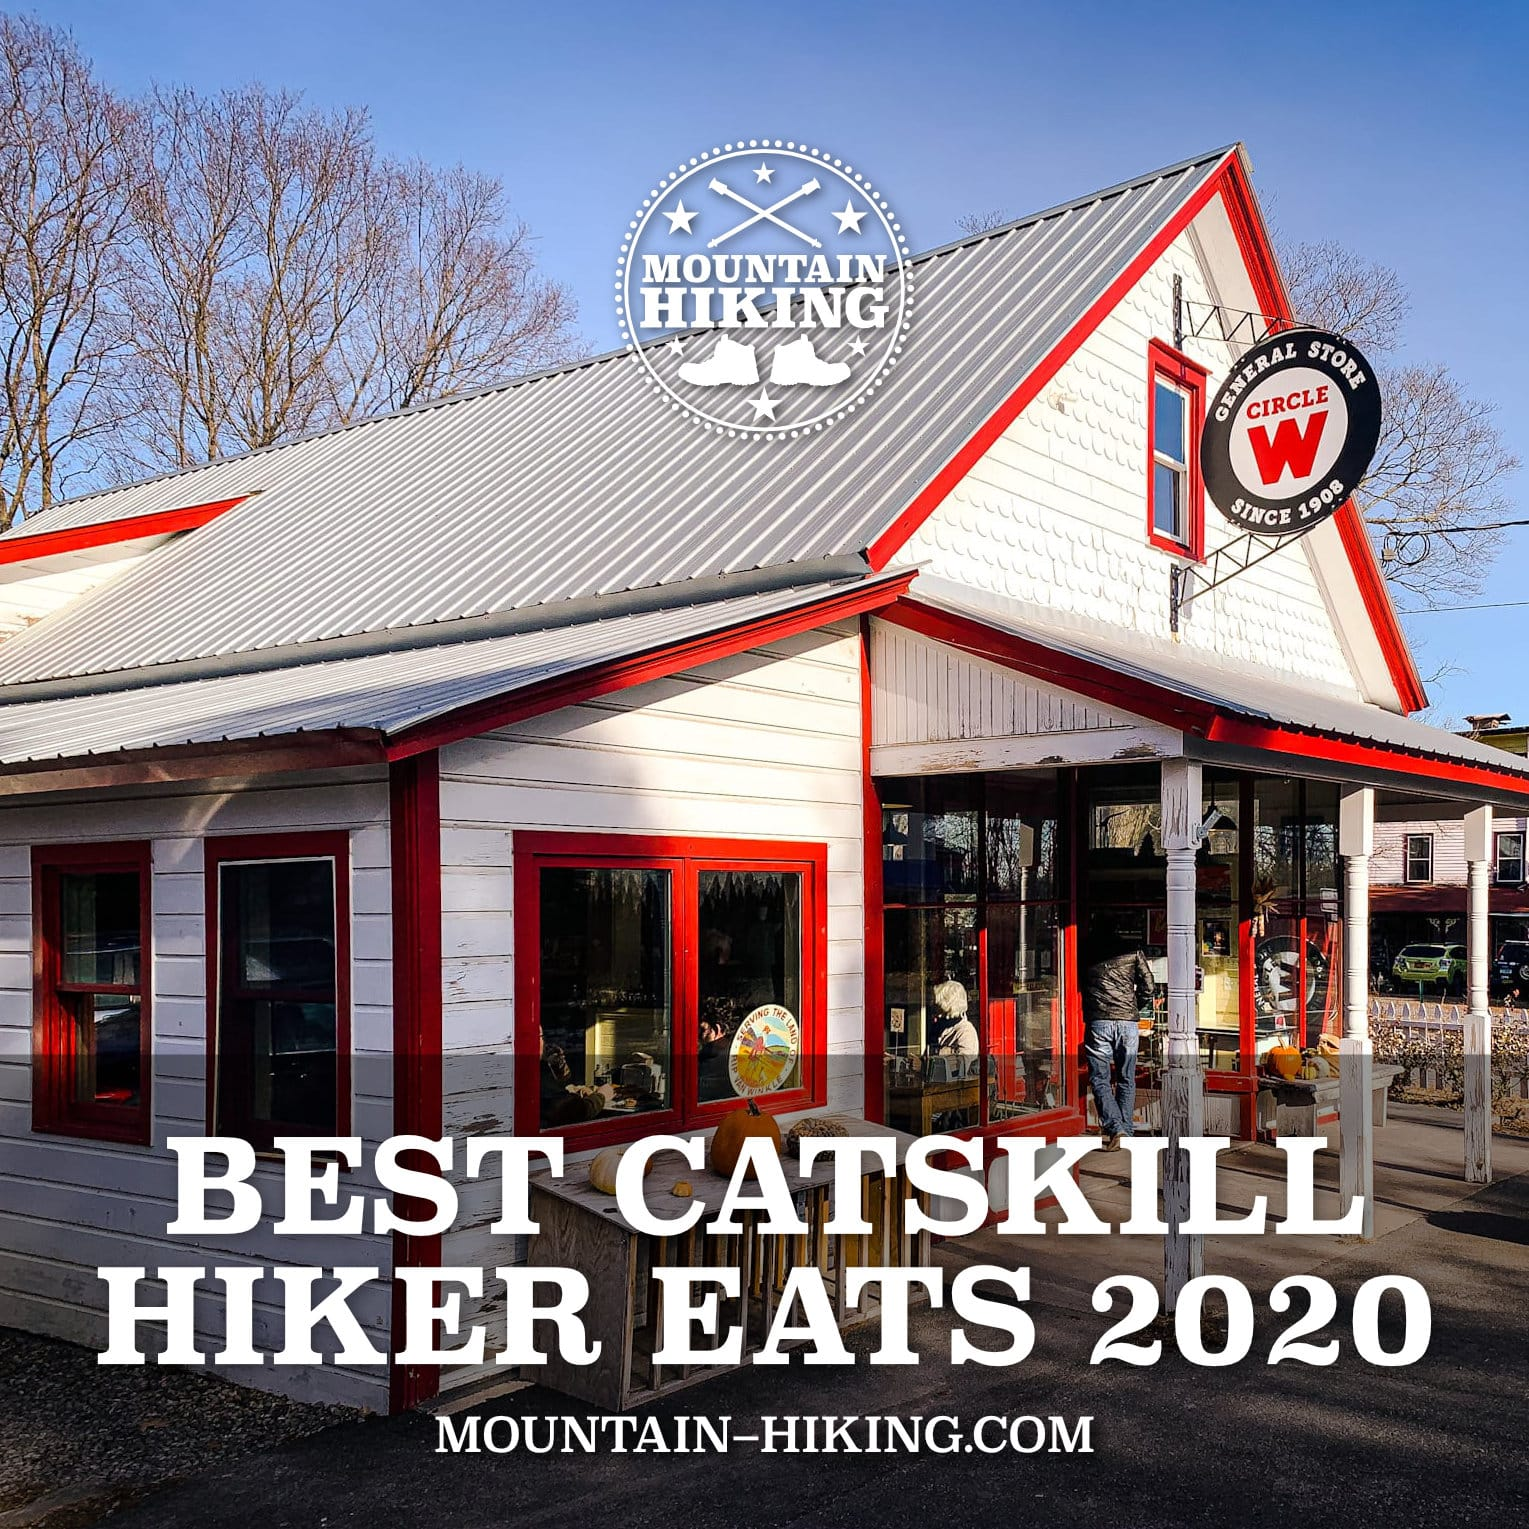 Best places to eat in the Catskills for hikers 2020